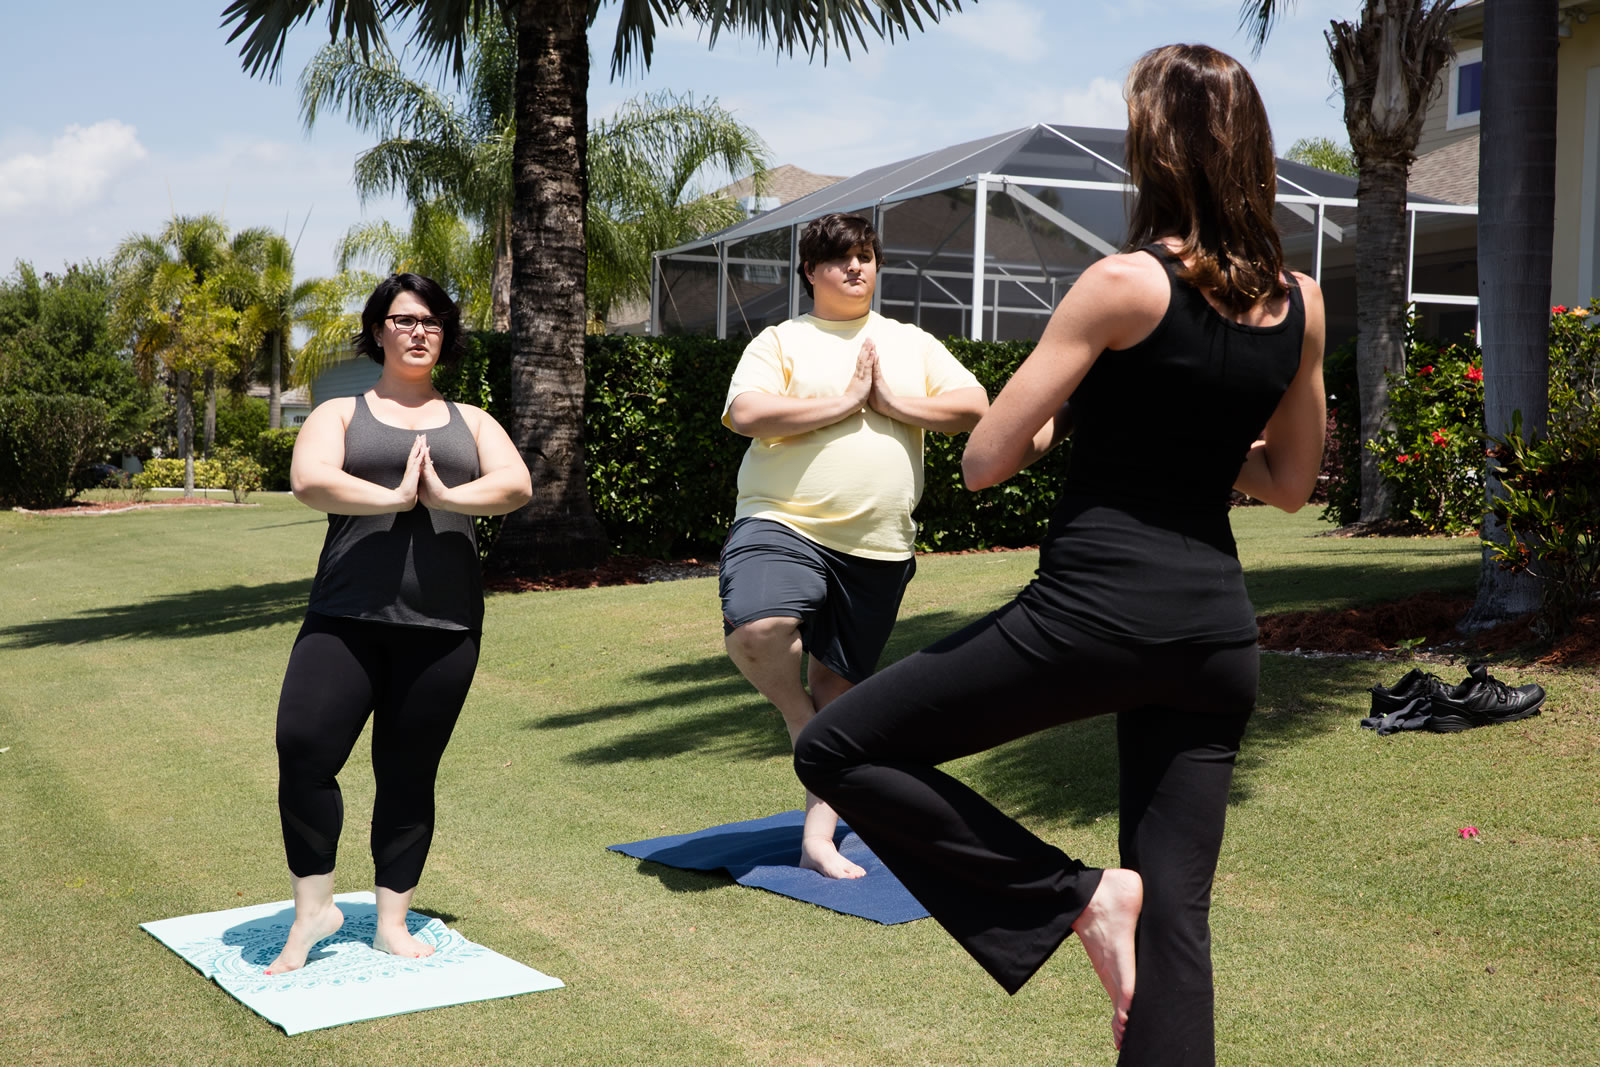 A couple attend a yoga class